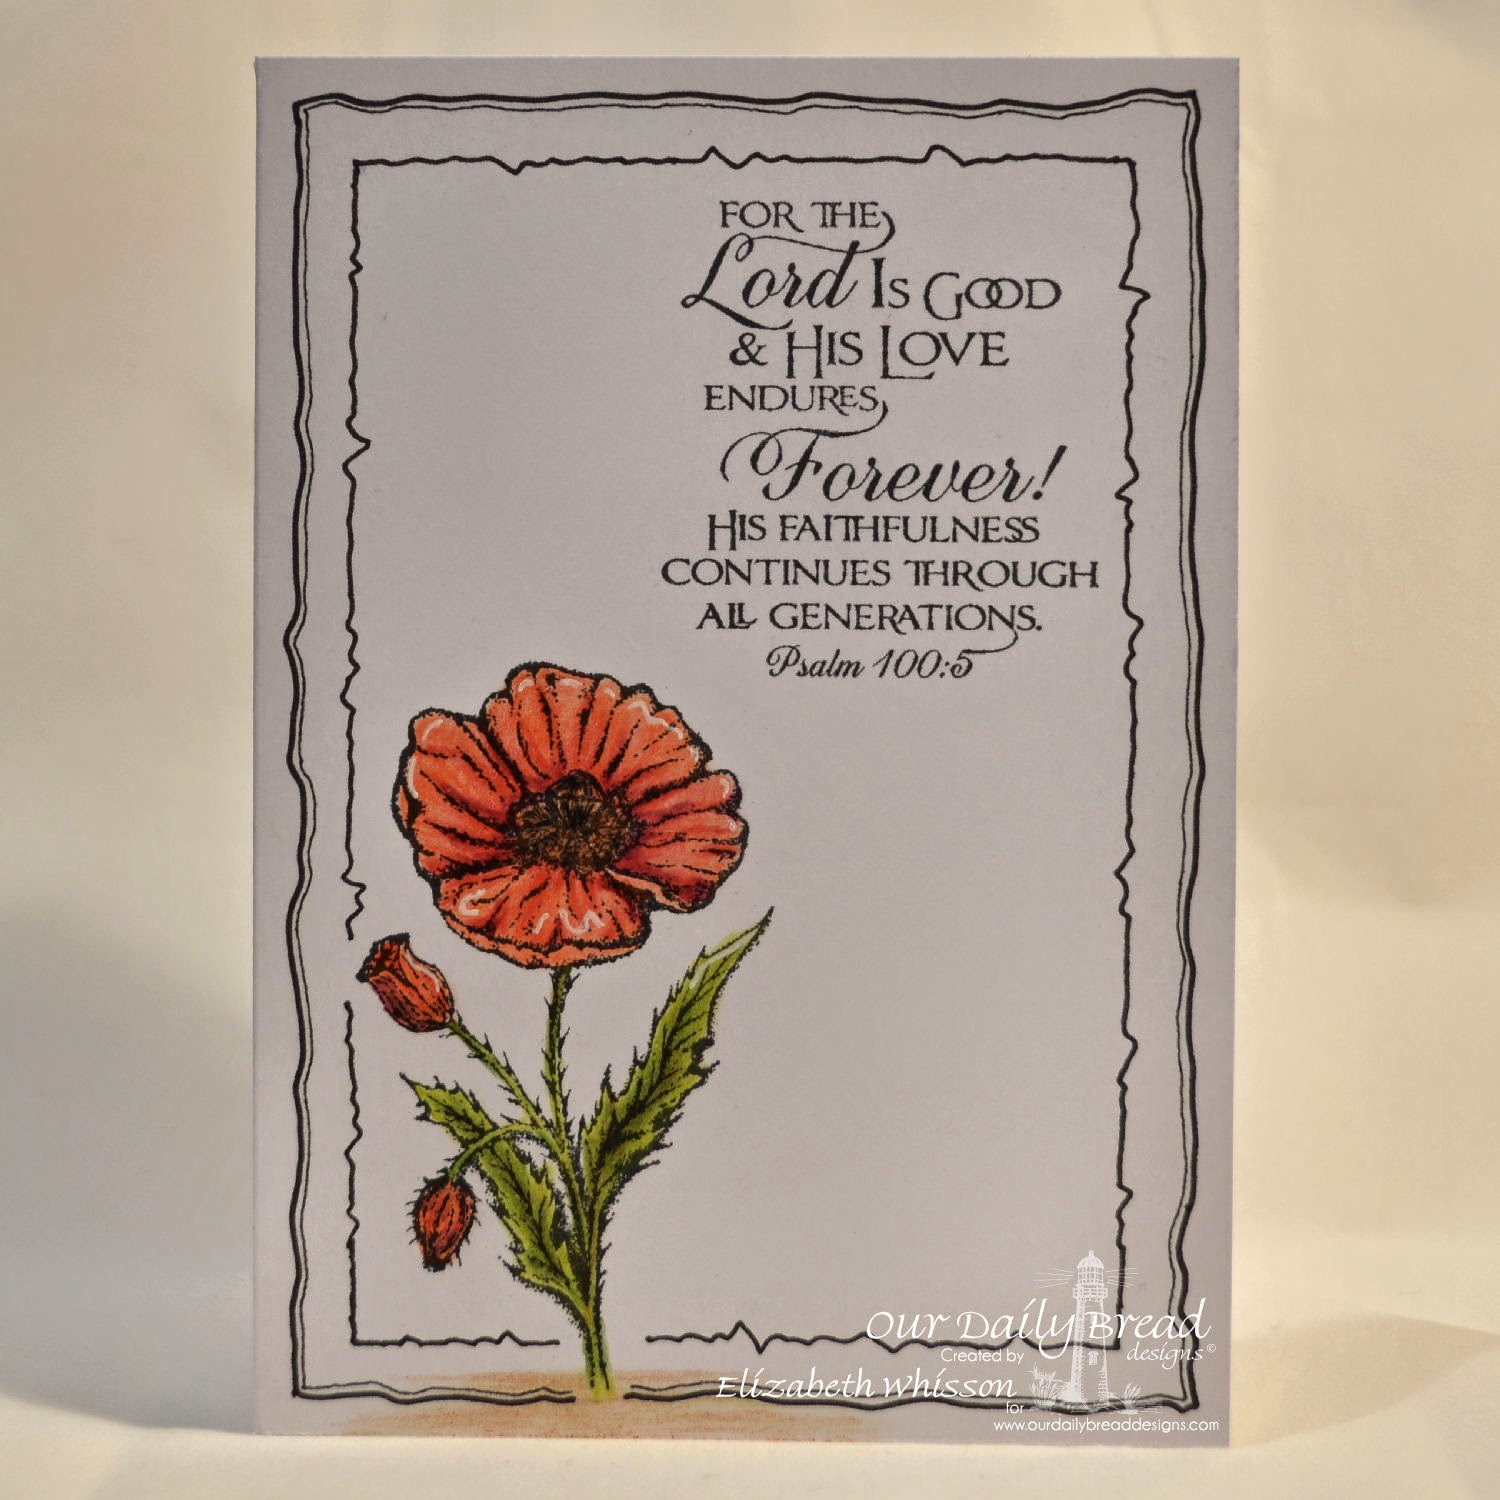 Elizabeth Whisson, Our Daily Bread Designs, Poppy, Psalm 100:5, handmade card, CAS, one layer, prismacolor pencils